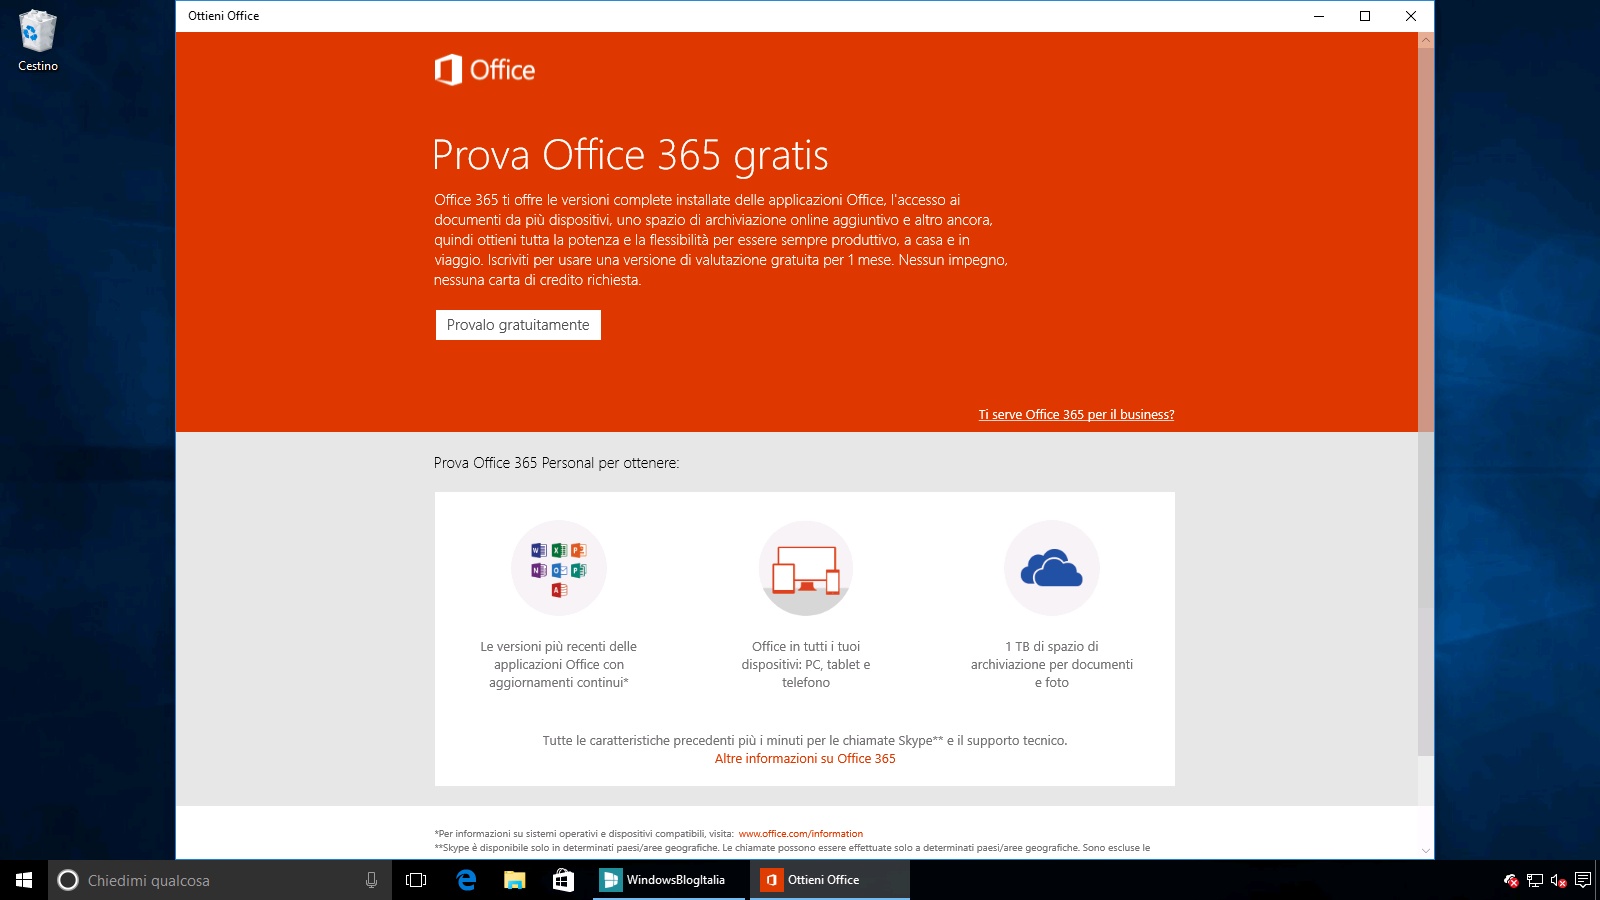 Ottieni Office Windows 10